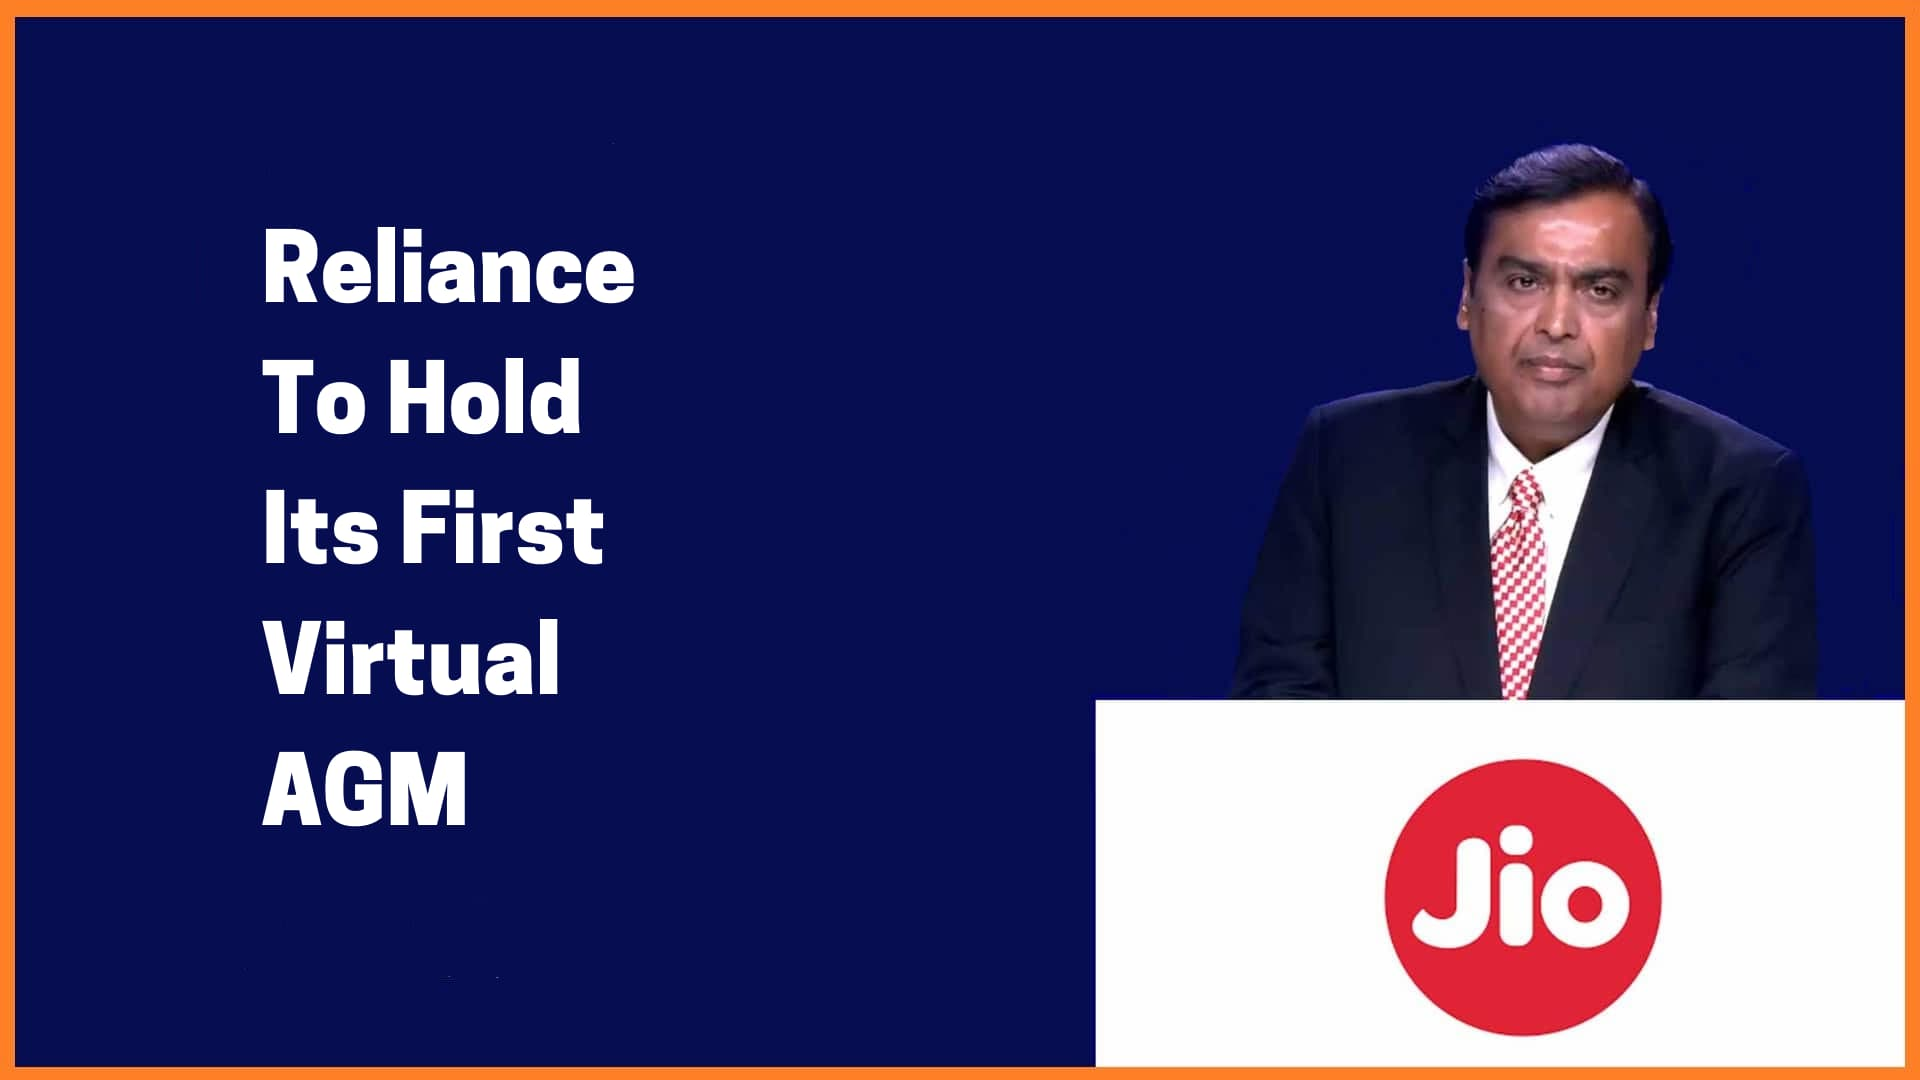 Reliance Industries Limited To Hold Its First Virtual AGM on July 15 | 43rd Annual General Meeting